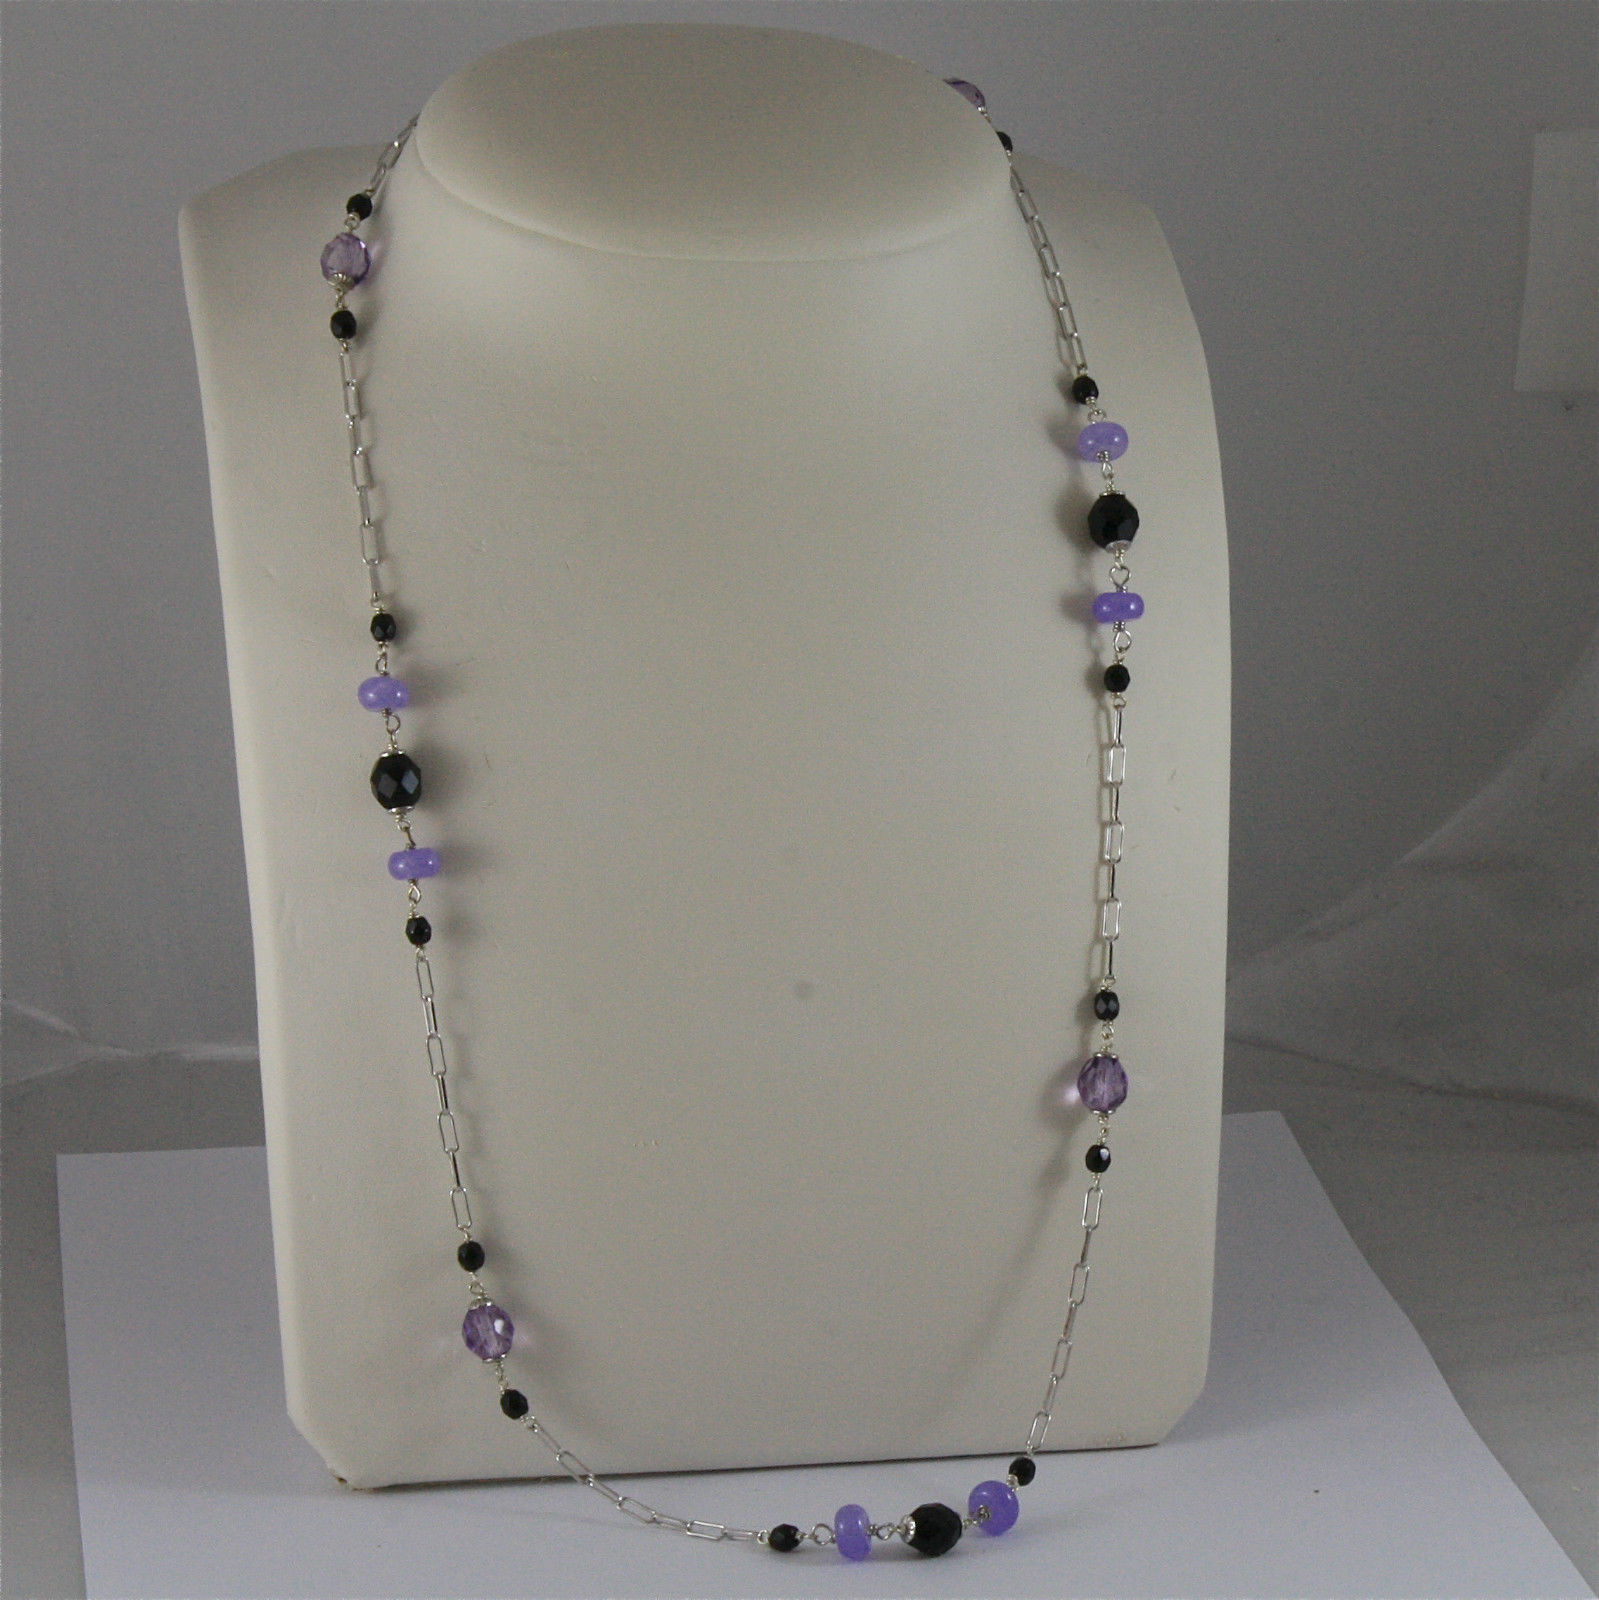 .925 SILVER RHODIUM NECKLACE 24,41 In, AMETHYST, BLACK ONYX, PURPLE CRYSTALS.